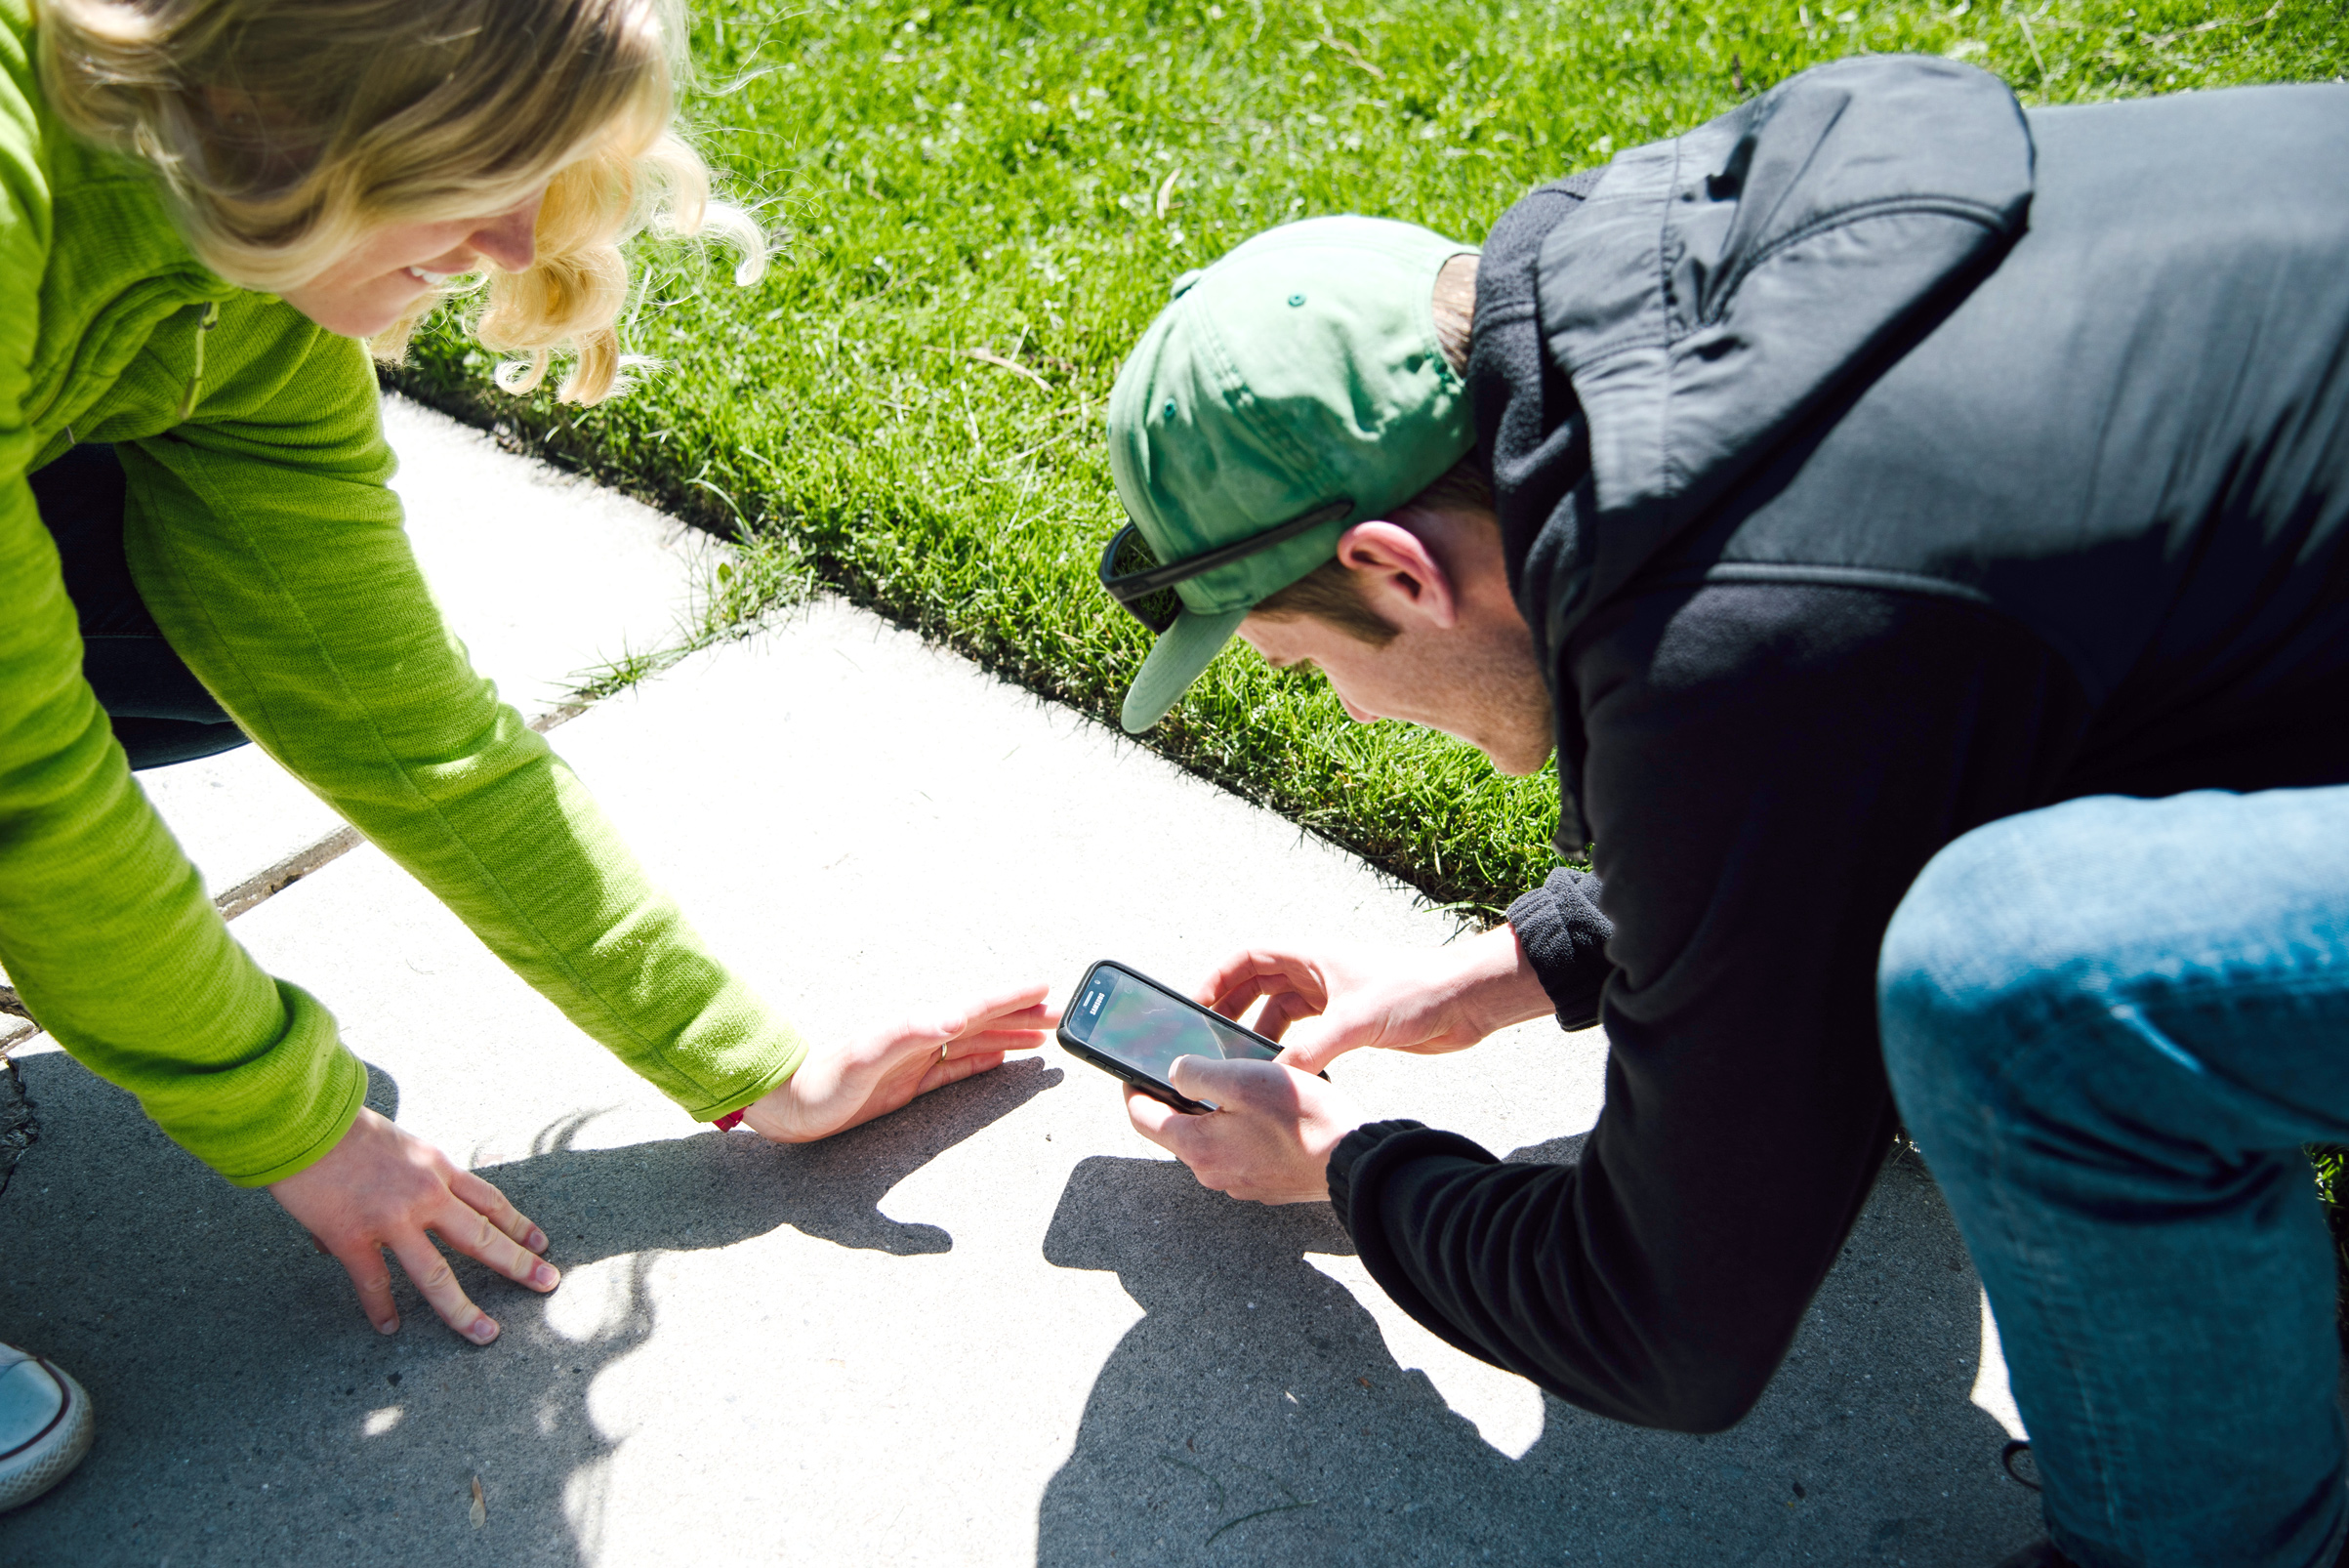 Man and woman crouched down on the sidewalk using cell phone to capture image of small bug.